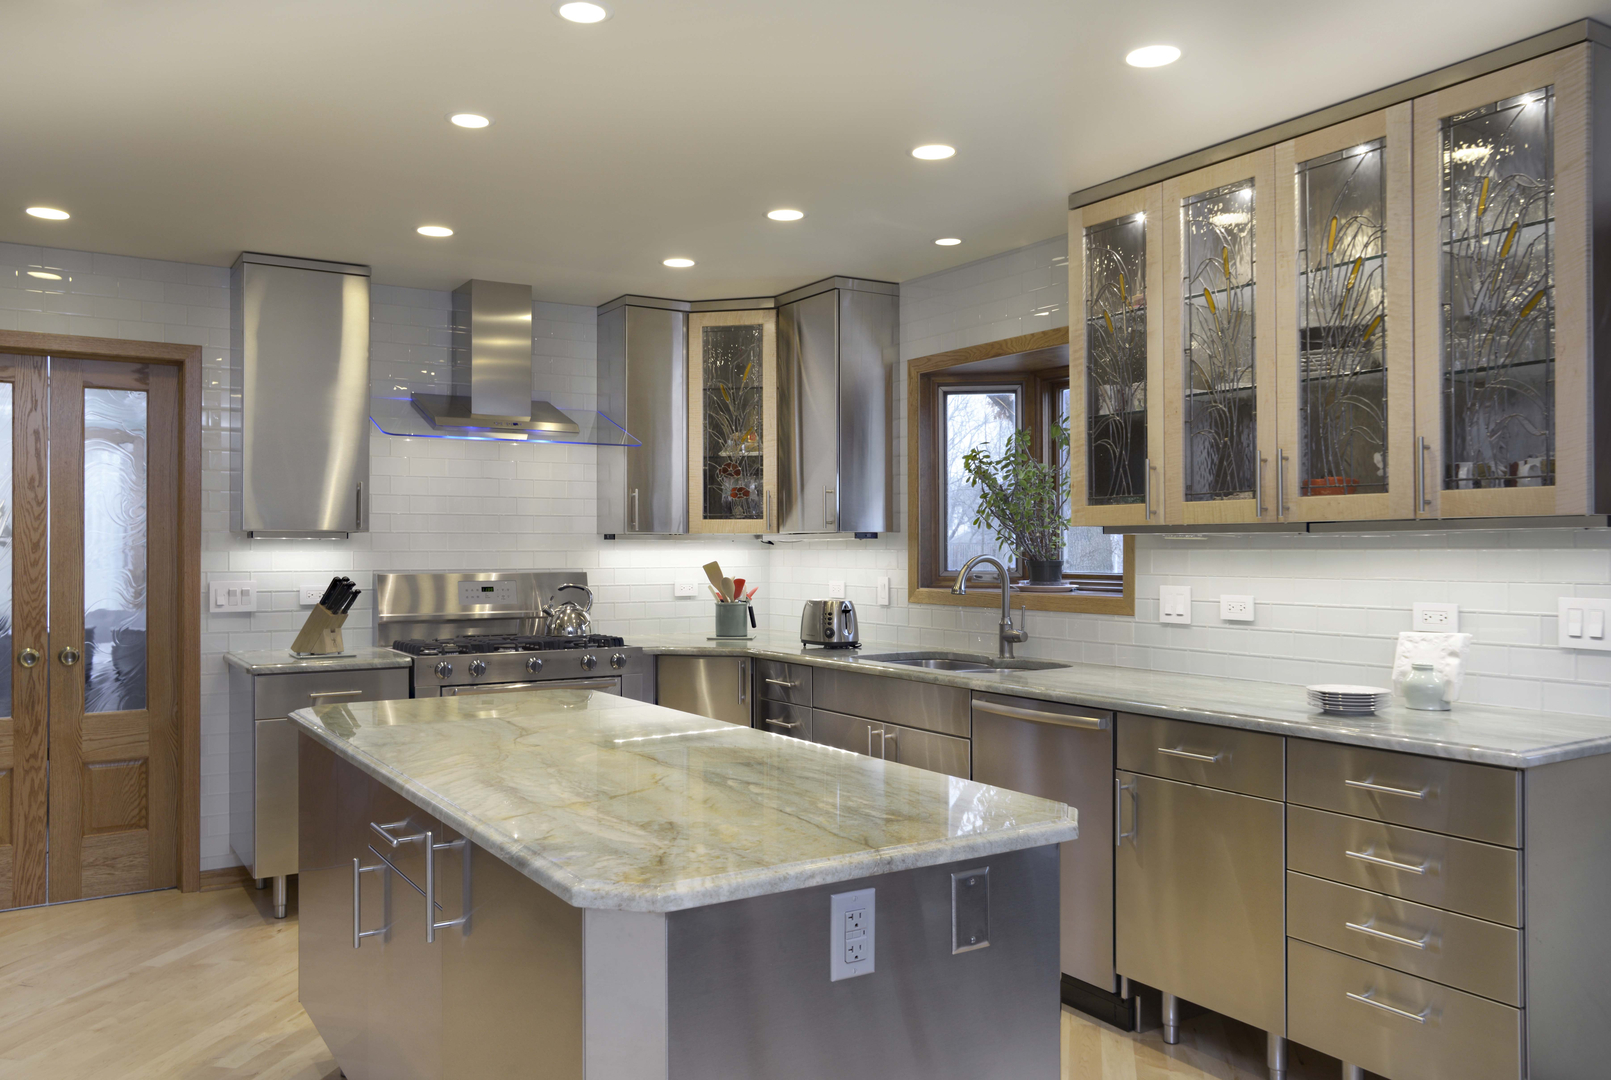 Stainless Steel Kitchen Cabinets: Pictures, Options, Tips & Ideas ...